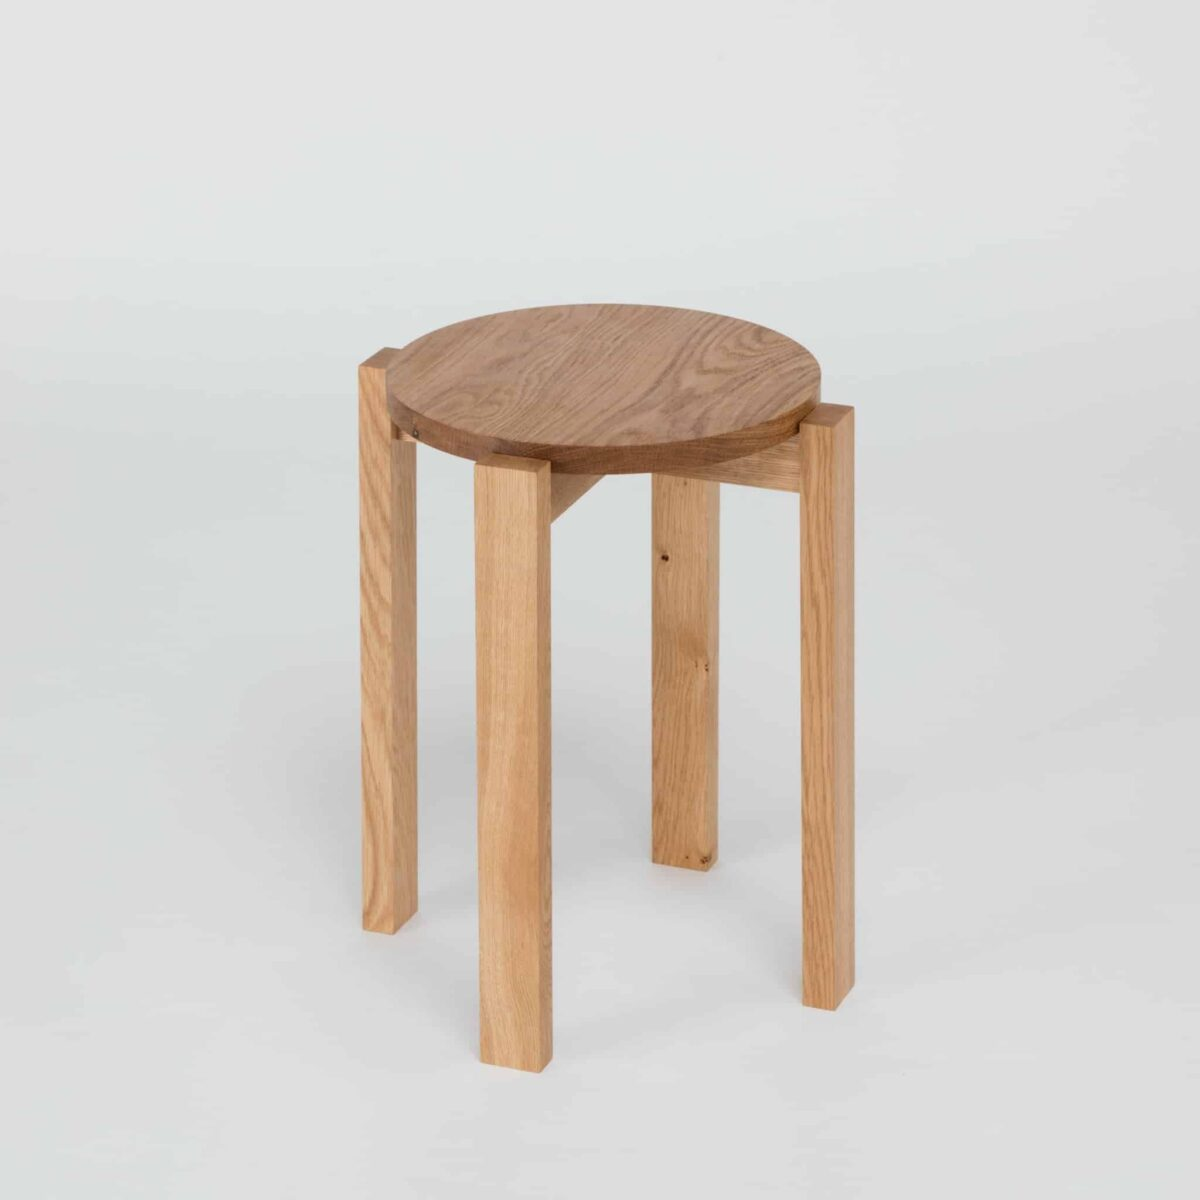 stool-four-another-country-004